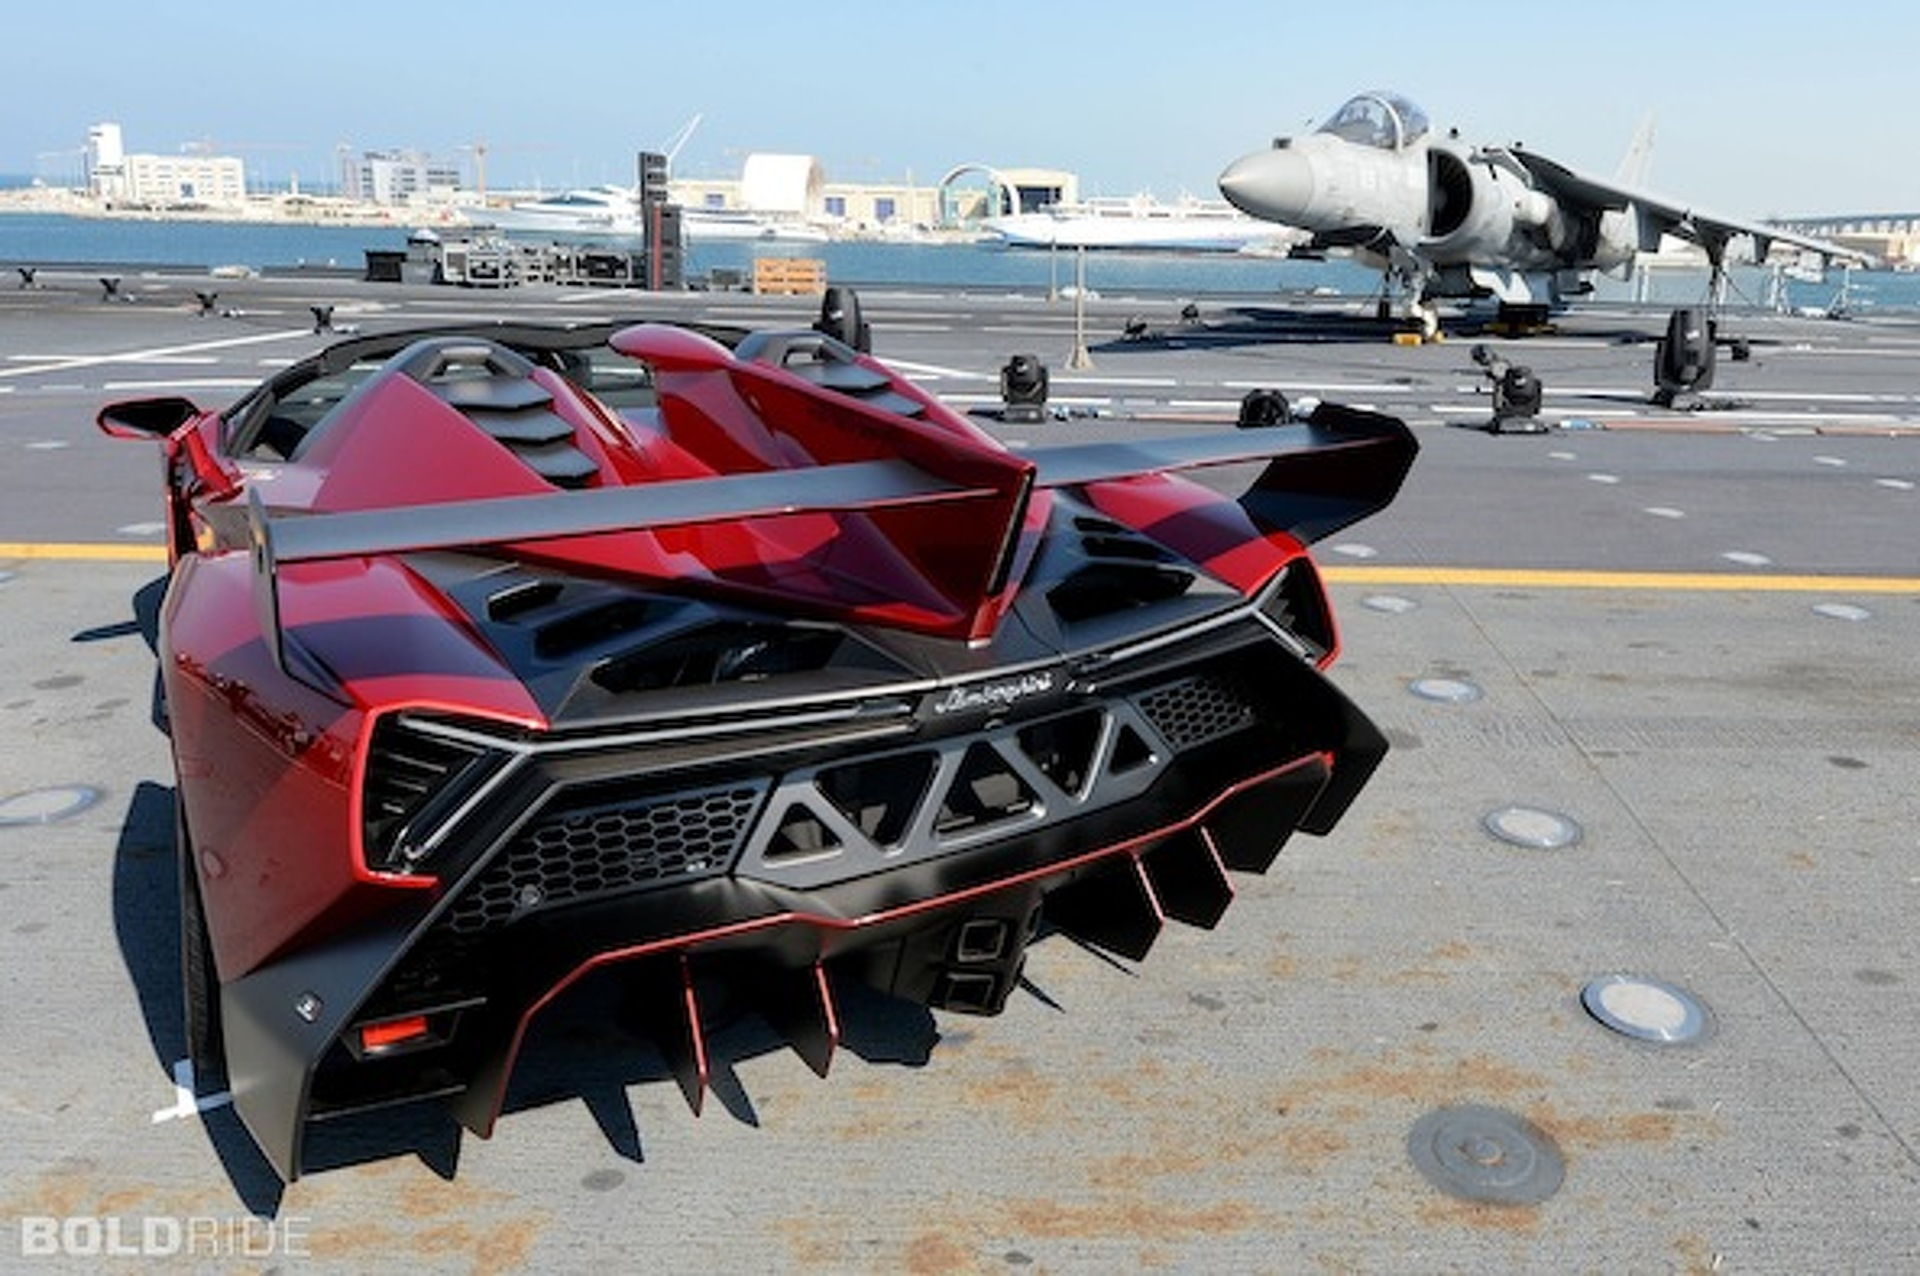 $4.6M Lamborghini Veneno Roadster Debuts on Aircraft Carrier